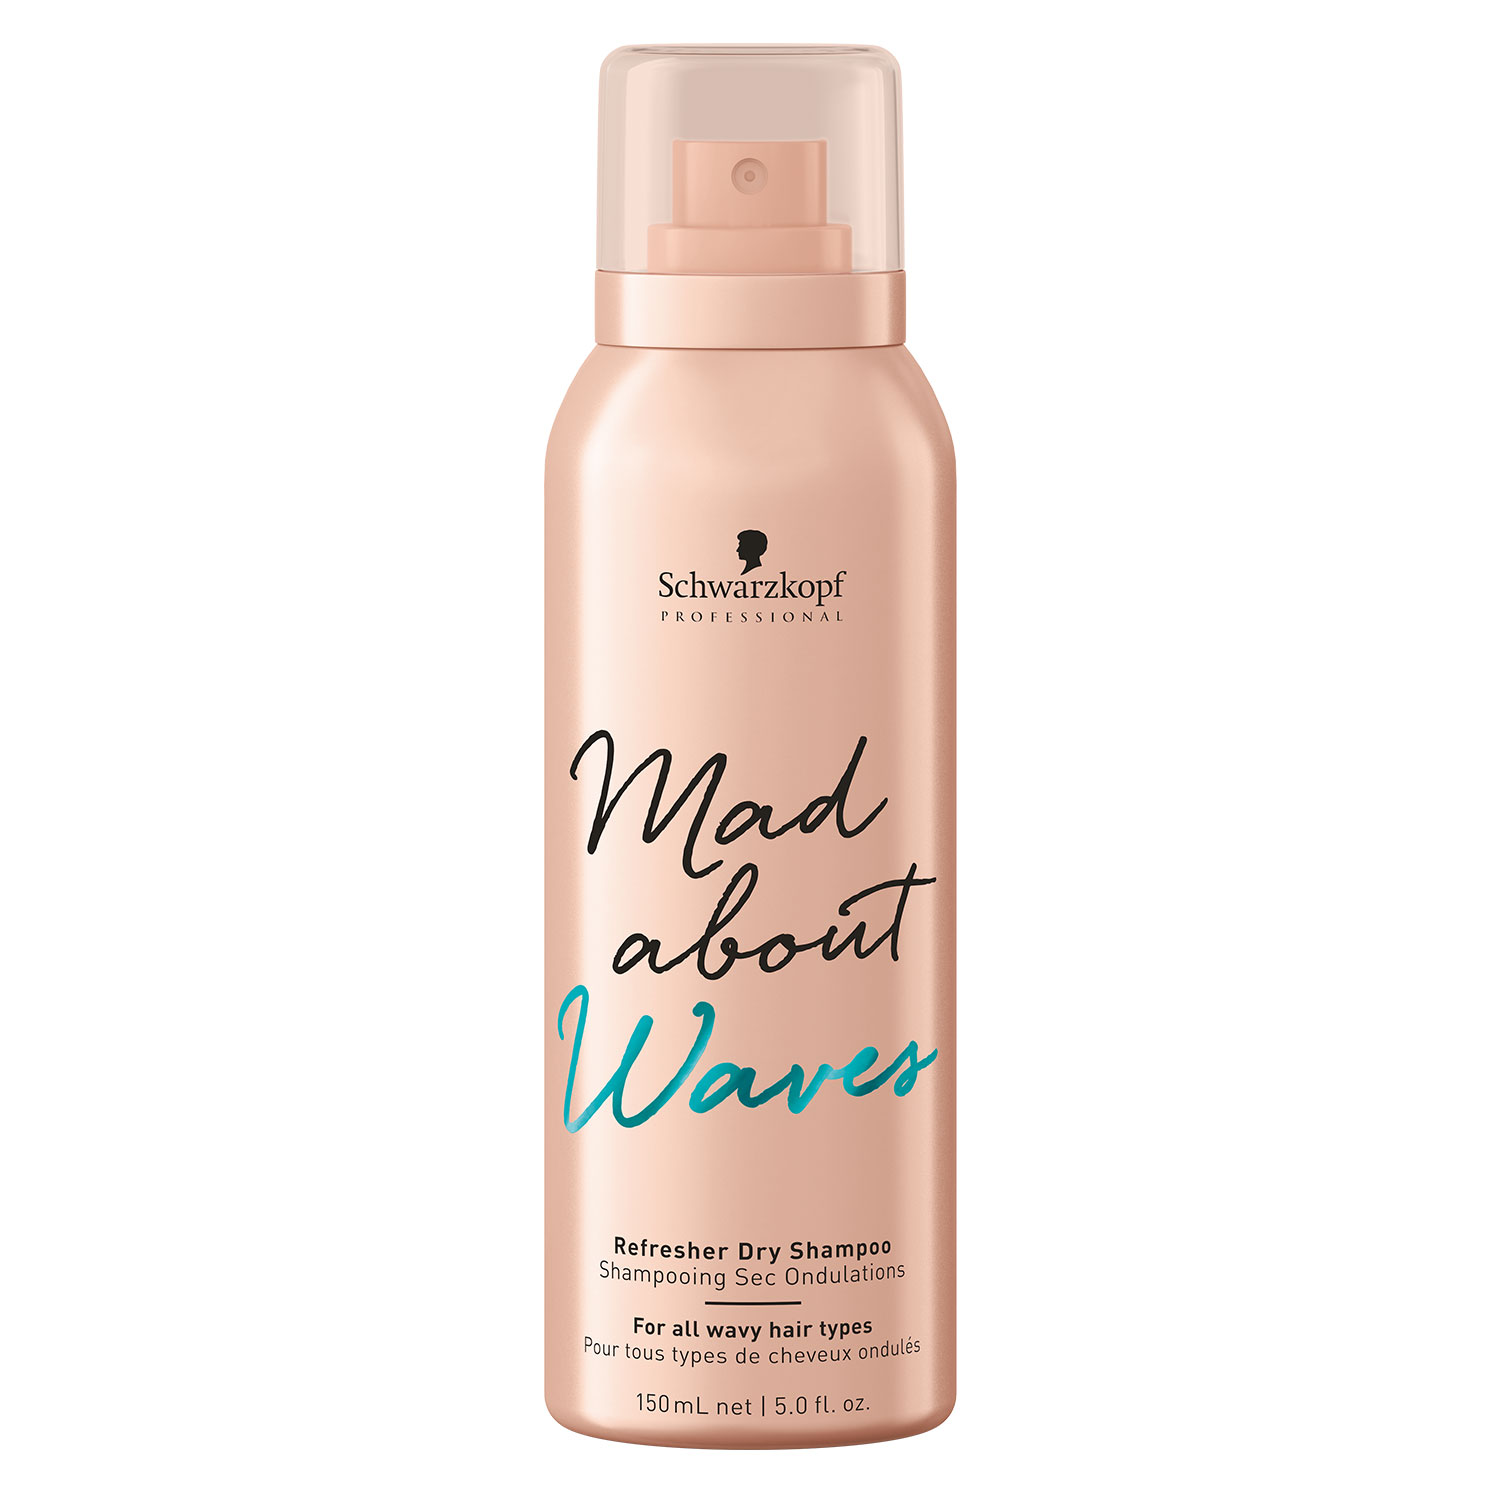 Mad About Waves - Refresher Dry Shampoo